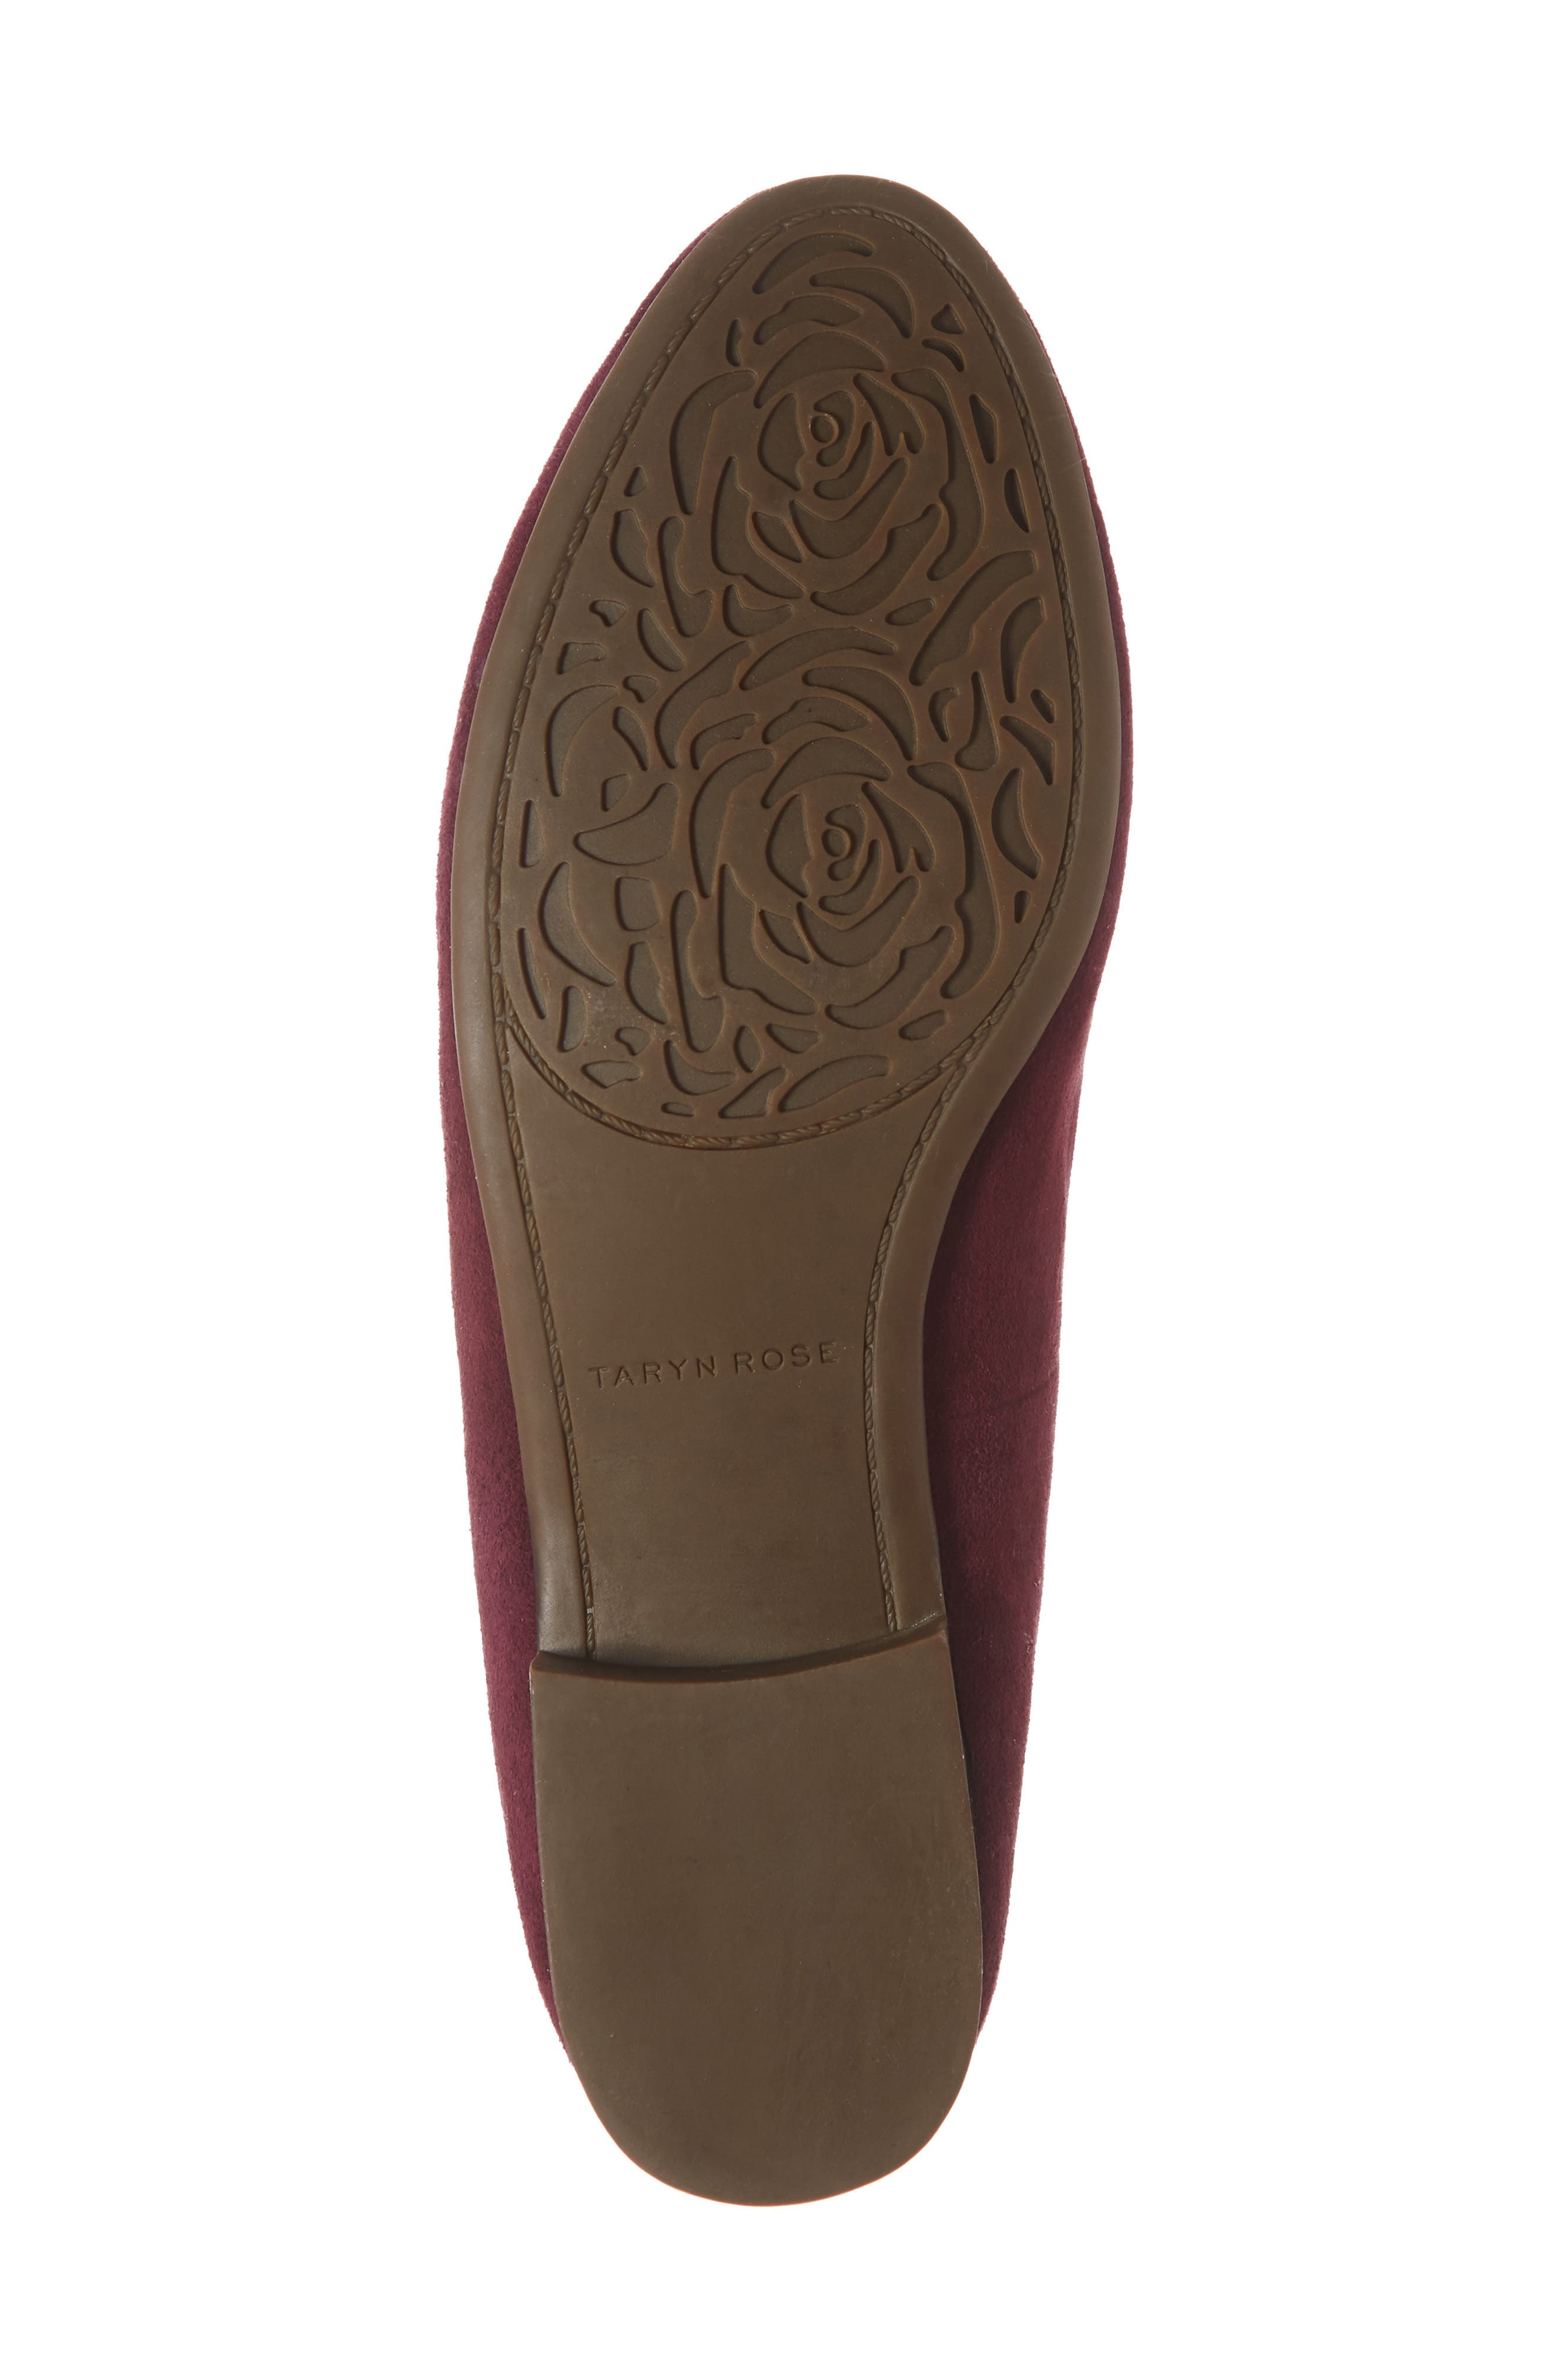 TARYN ROSE,                             Bryanna Loafer,                             Alternate thumbnail 6, color,                             FIG SUEDE